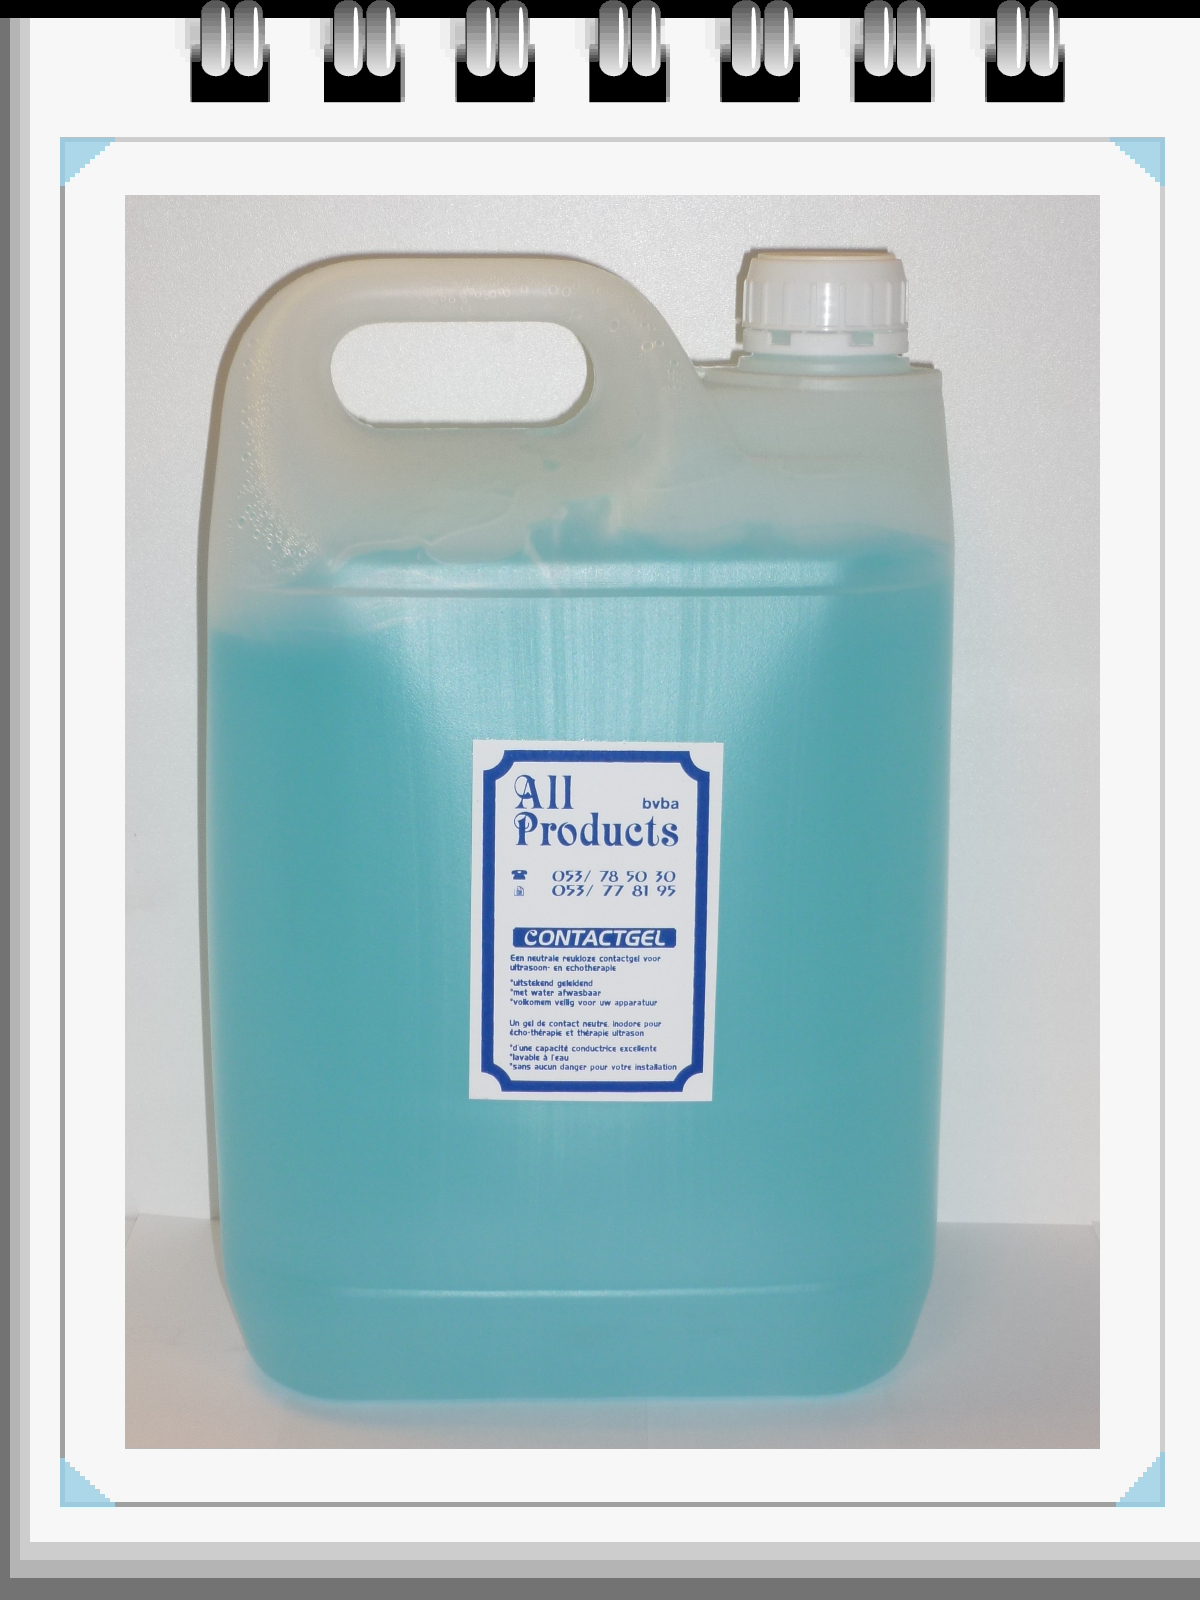 All Products - Ultrason Gel 5 Liter